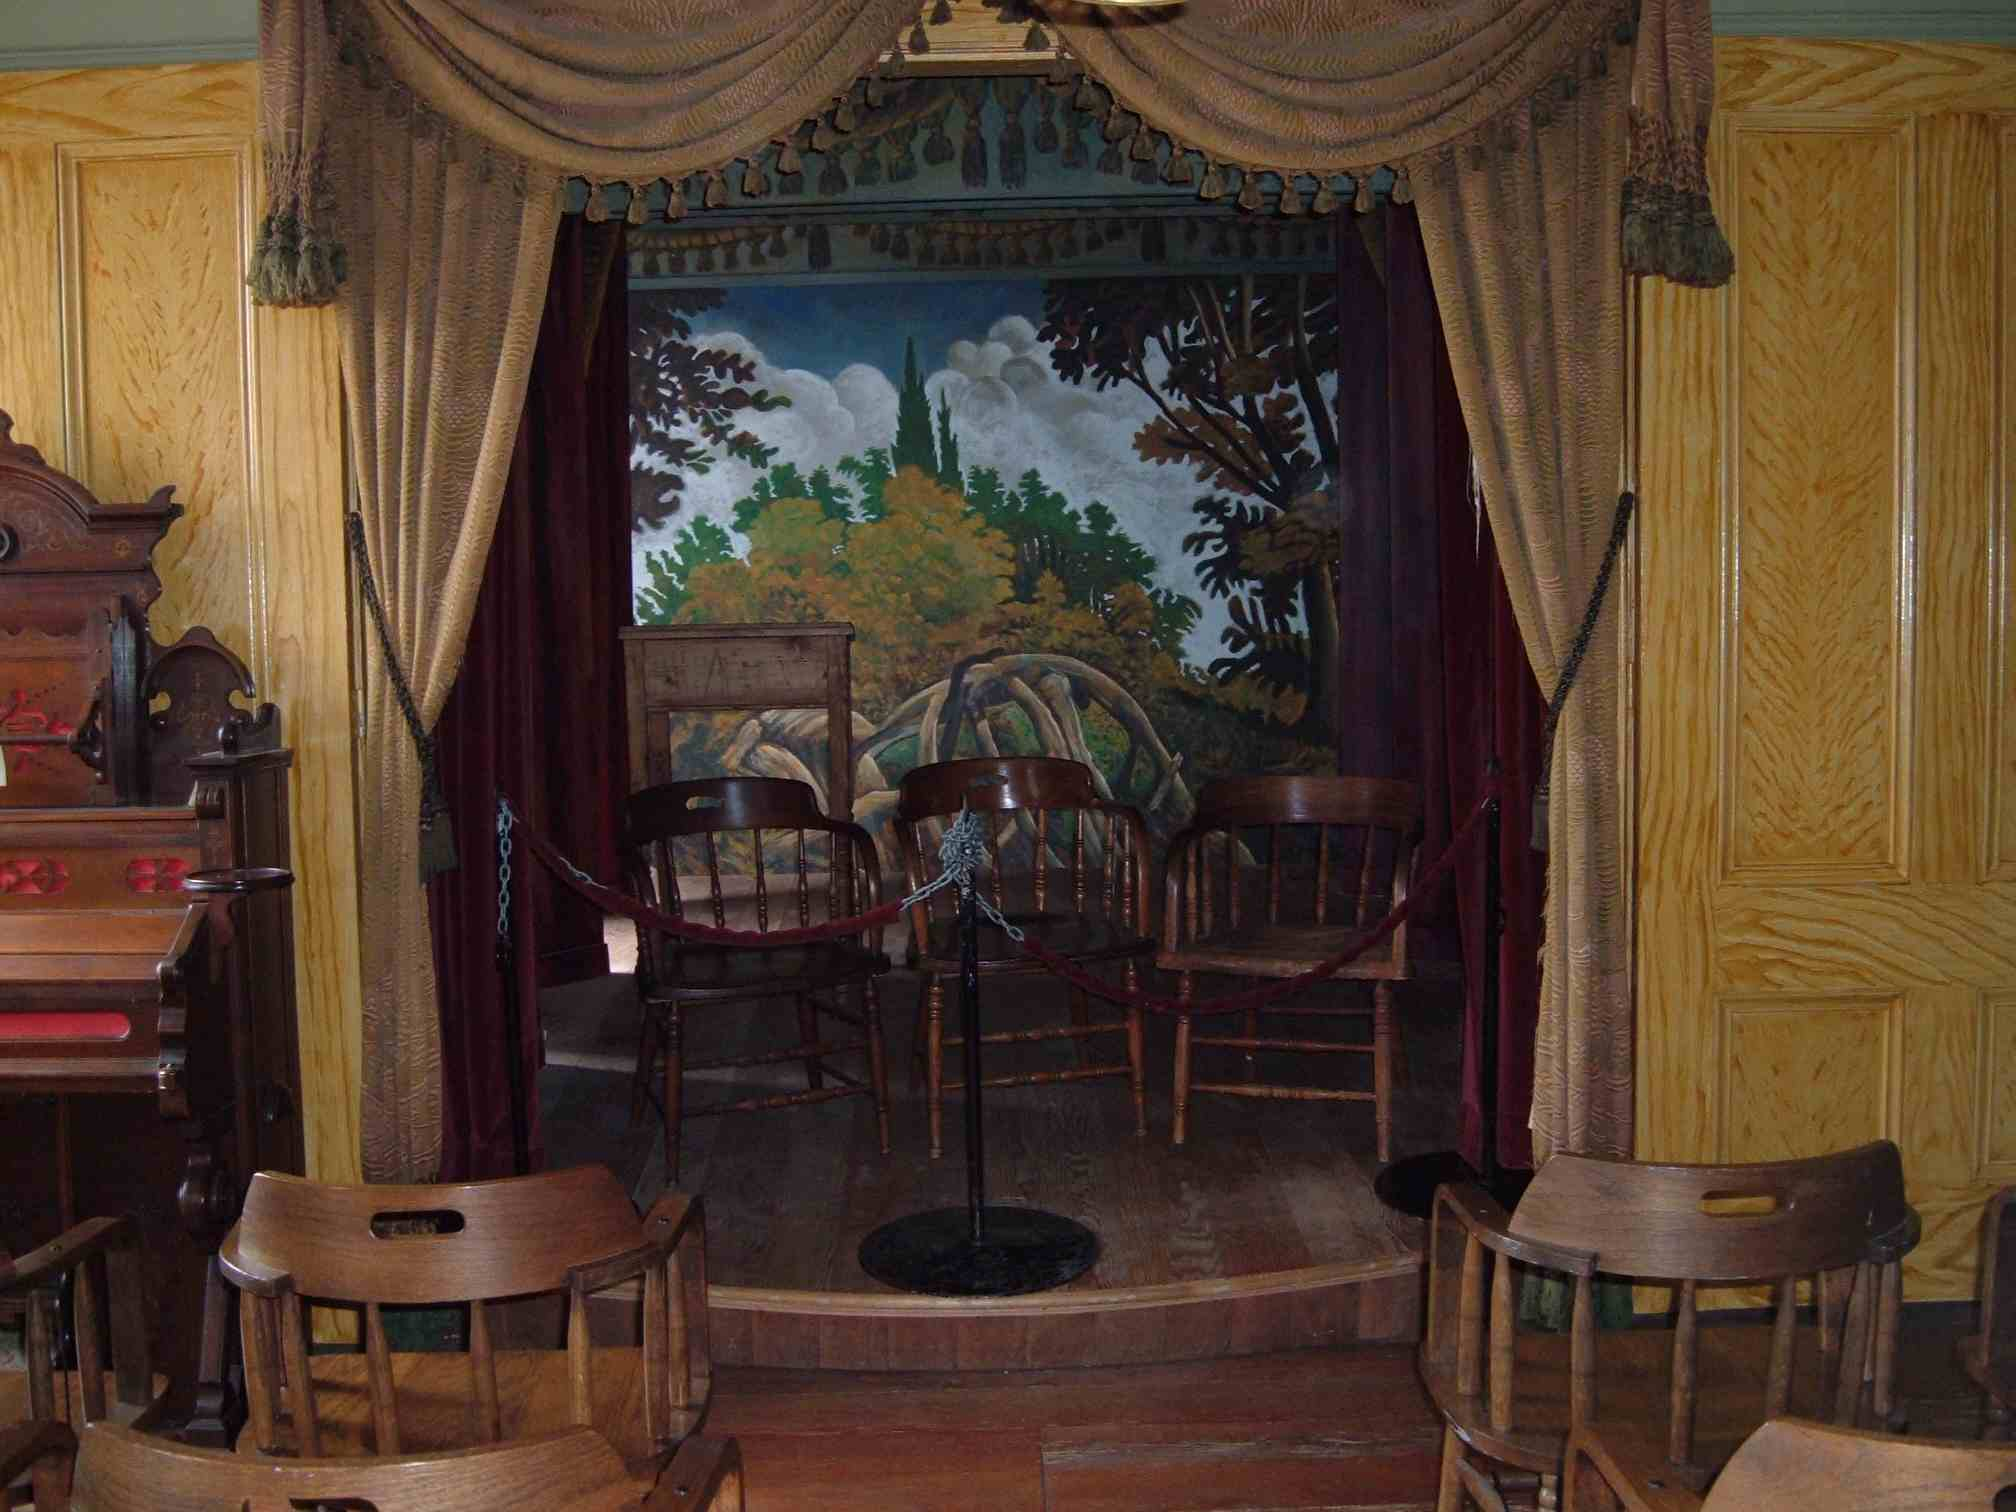 The stage at the Whaley House in California where ghosts are said to perform.